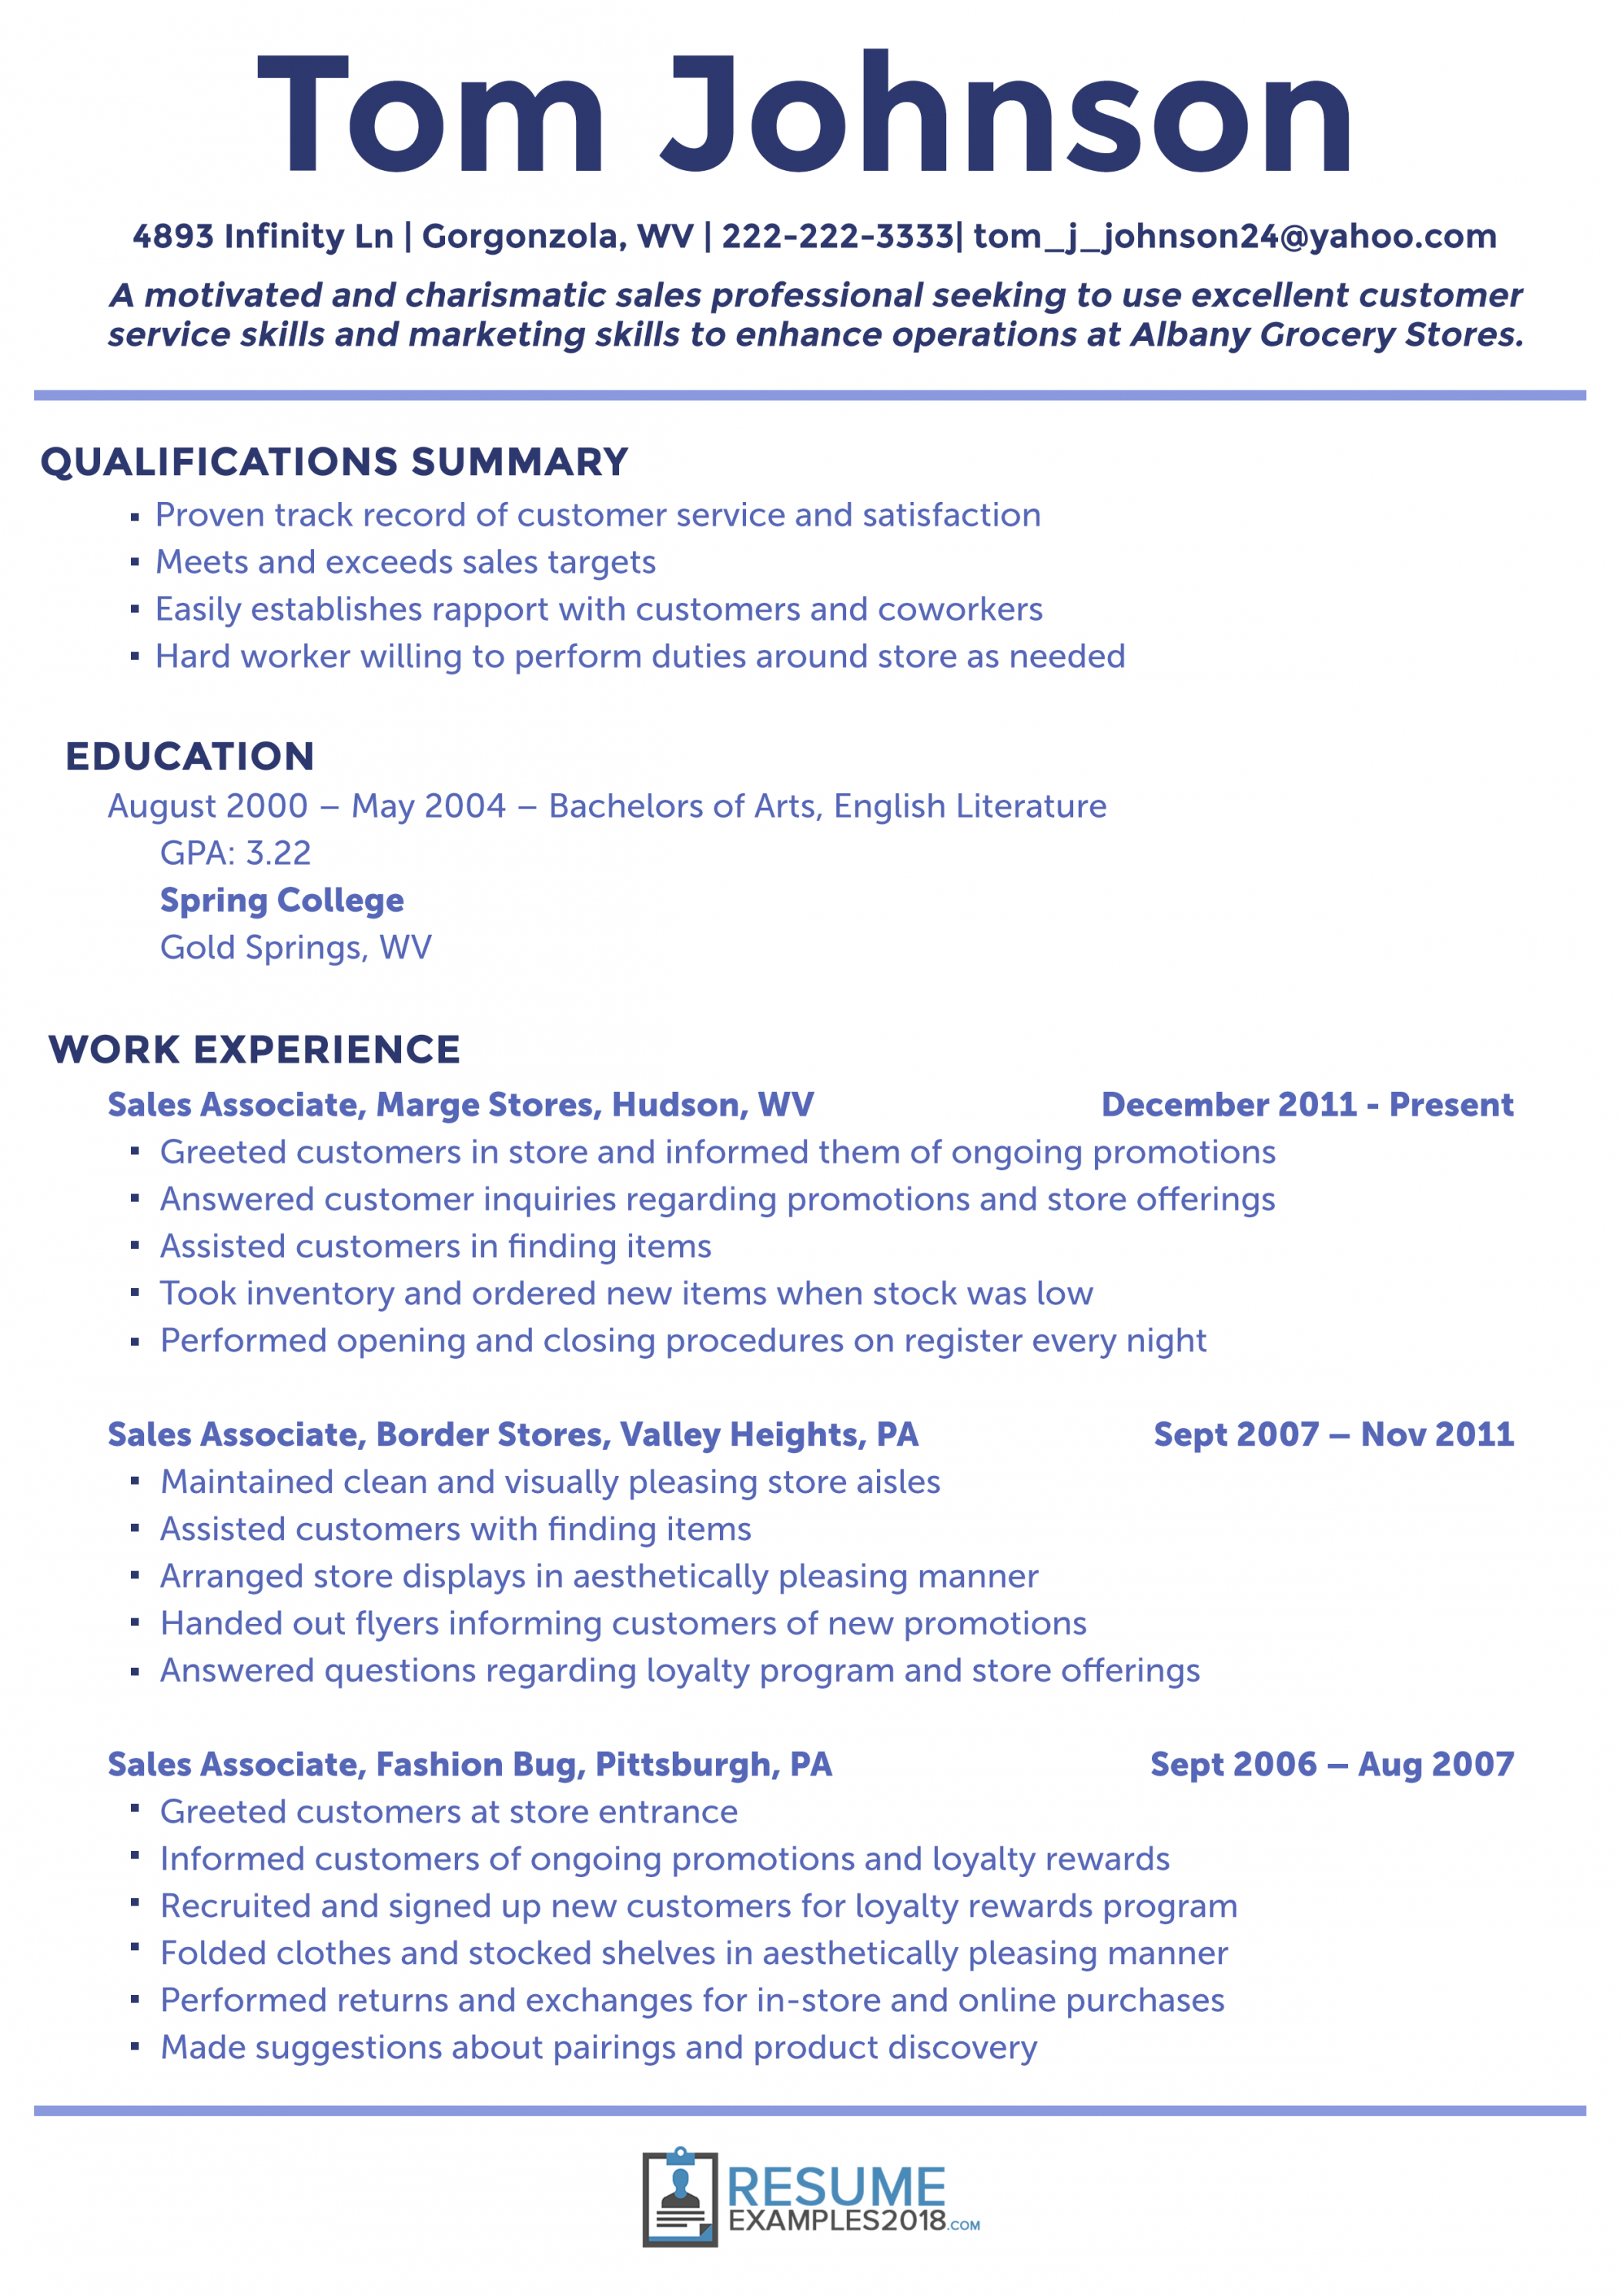 Resume Format Template 2018